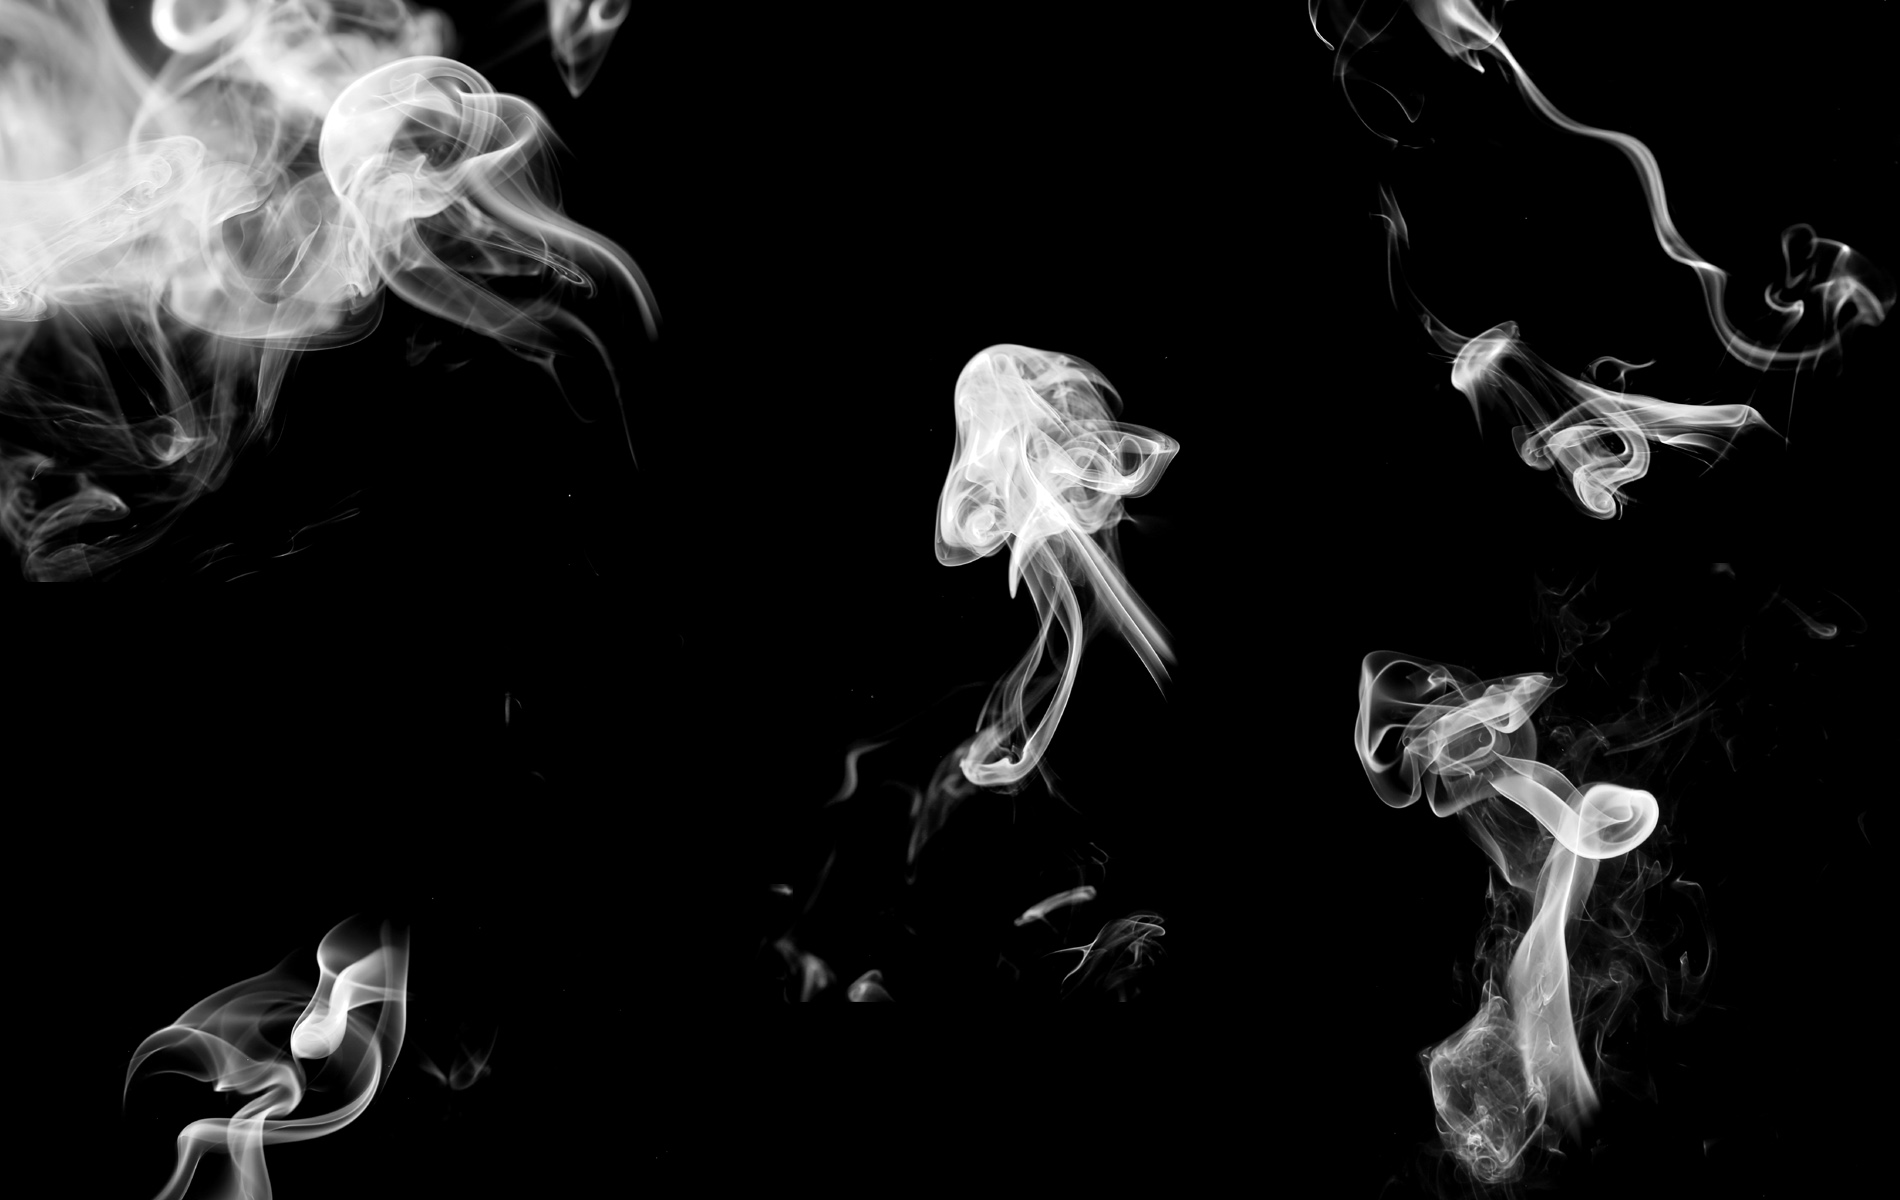 Smoke wallpaper and background image 1900x1200 id - No smoking wallpaper download ...